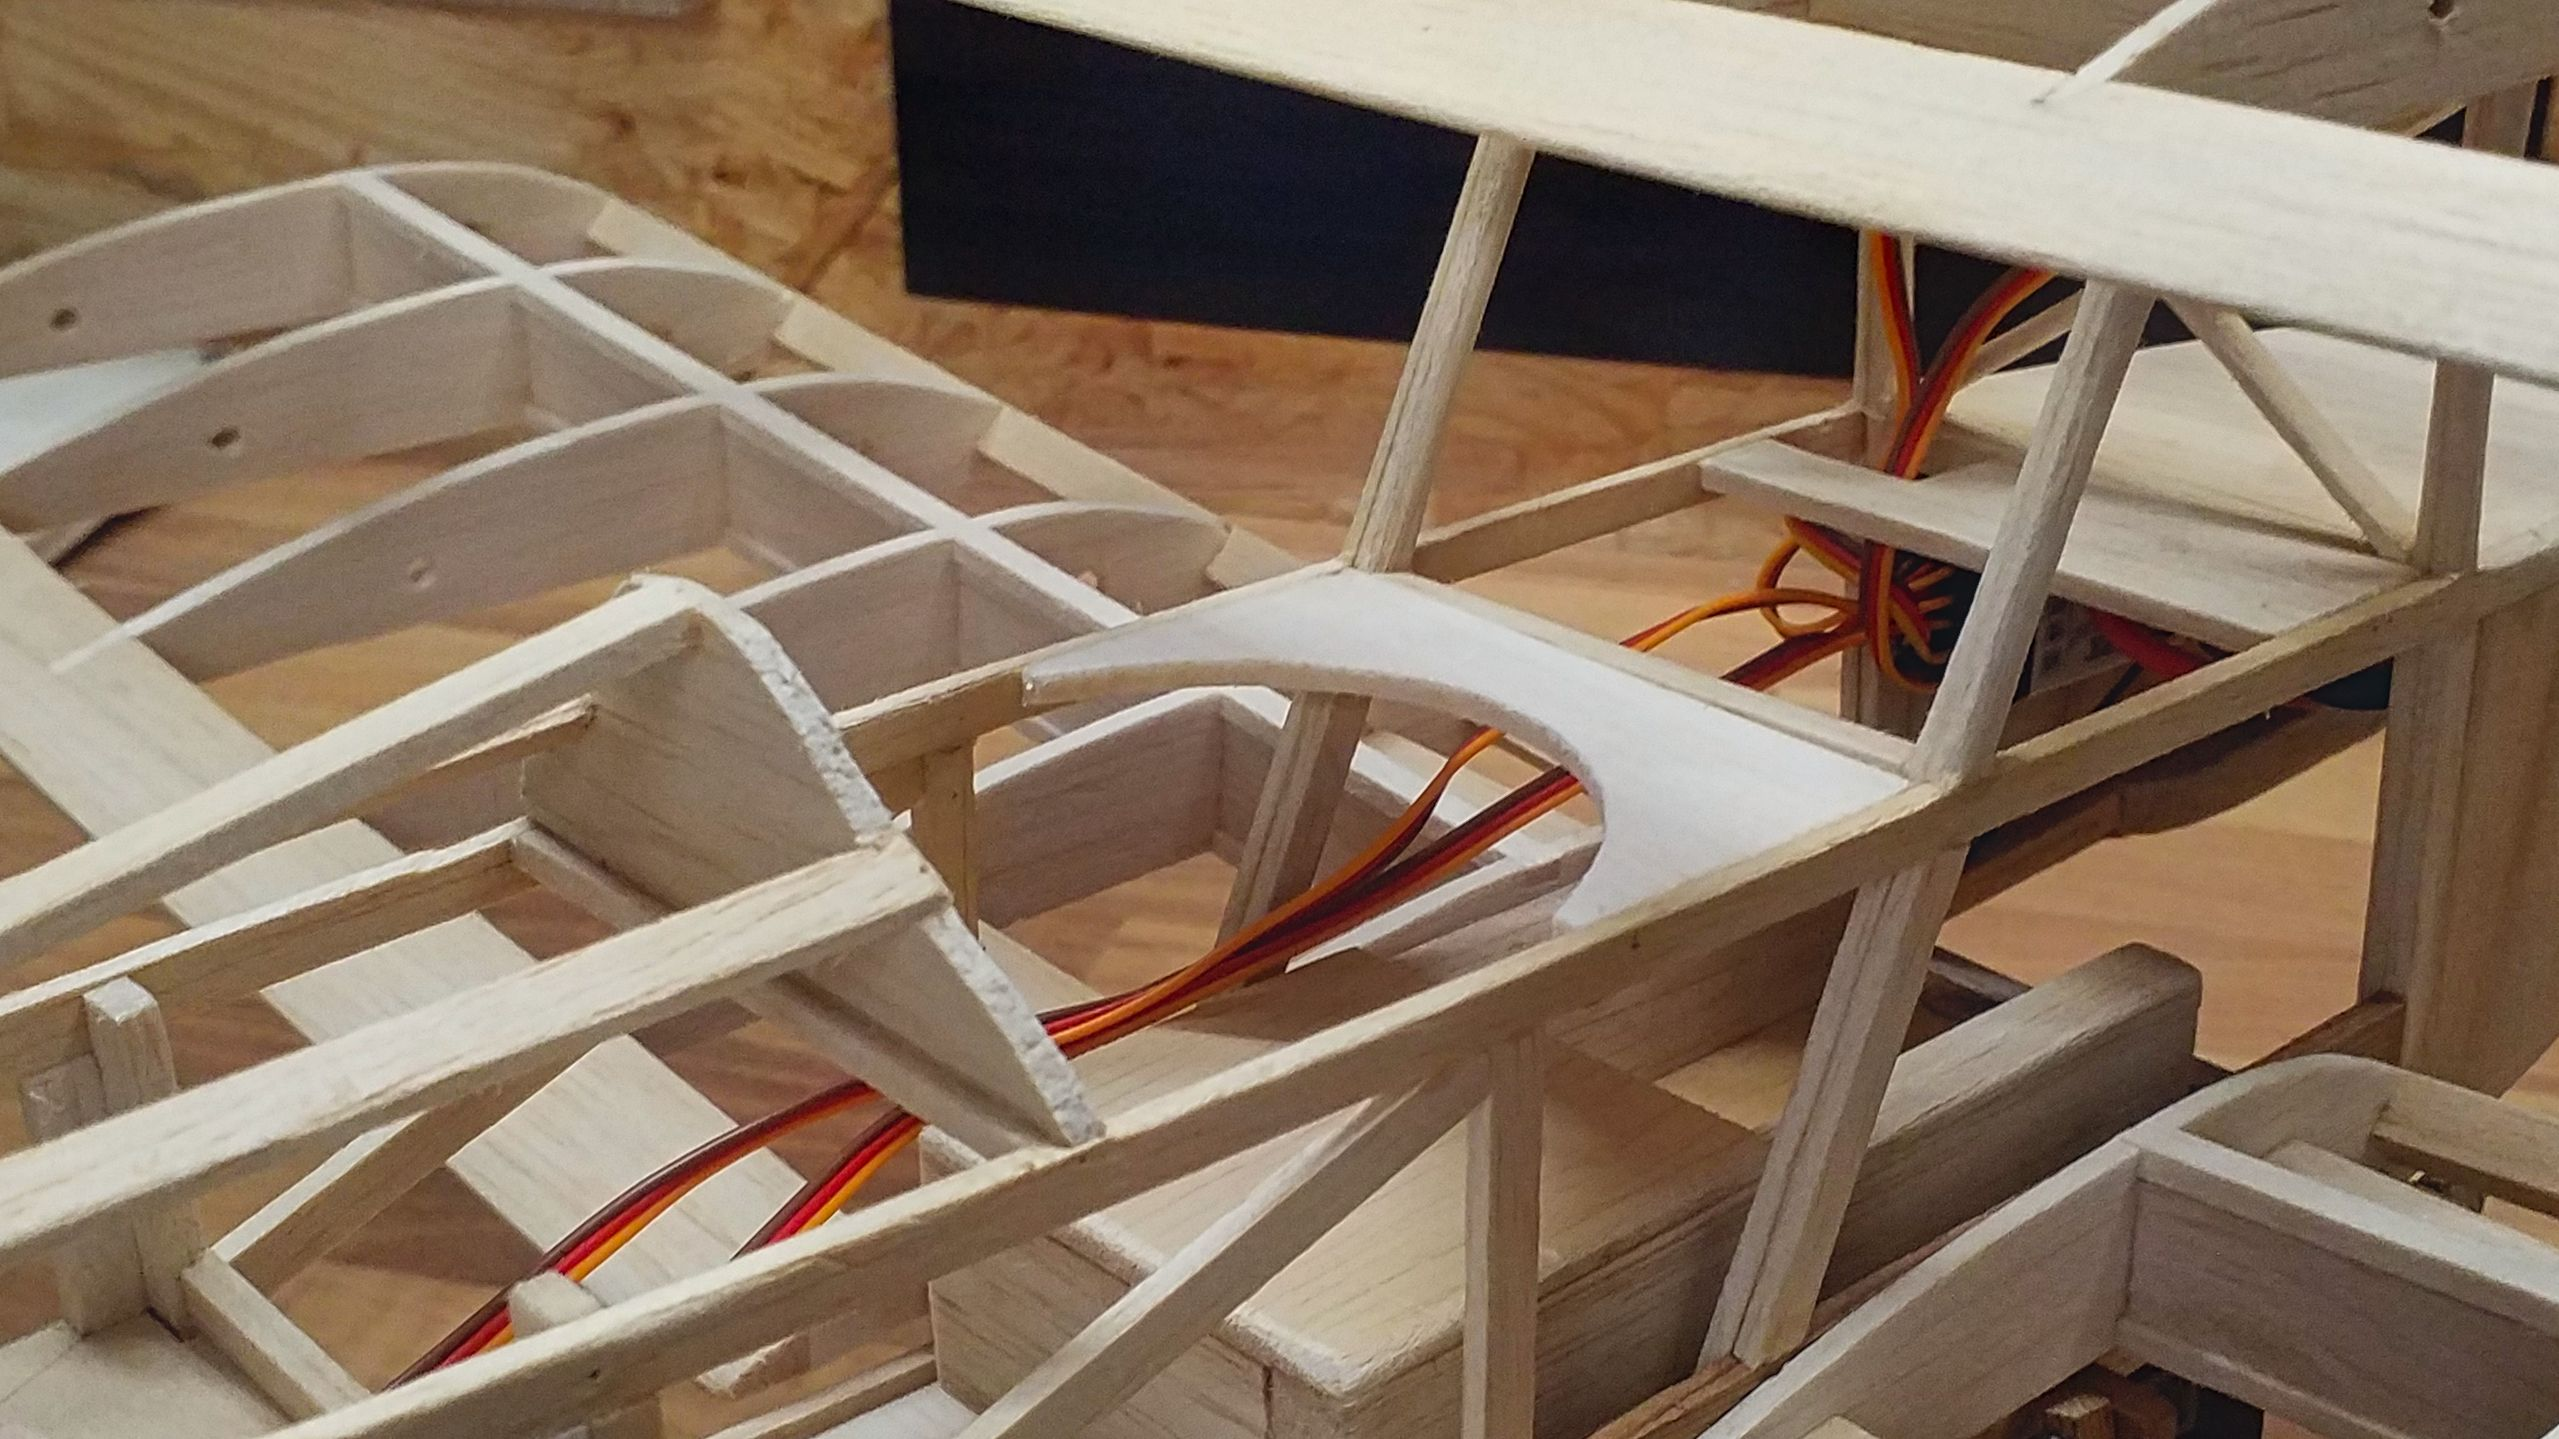 The cockpit has received a frame.